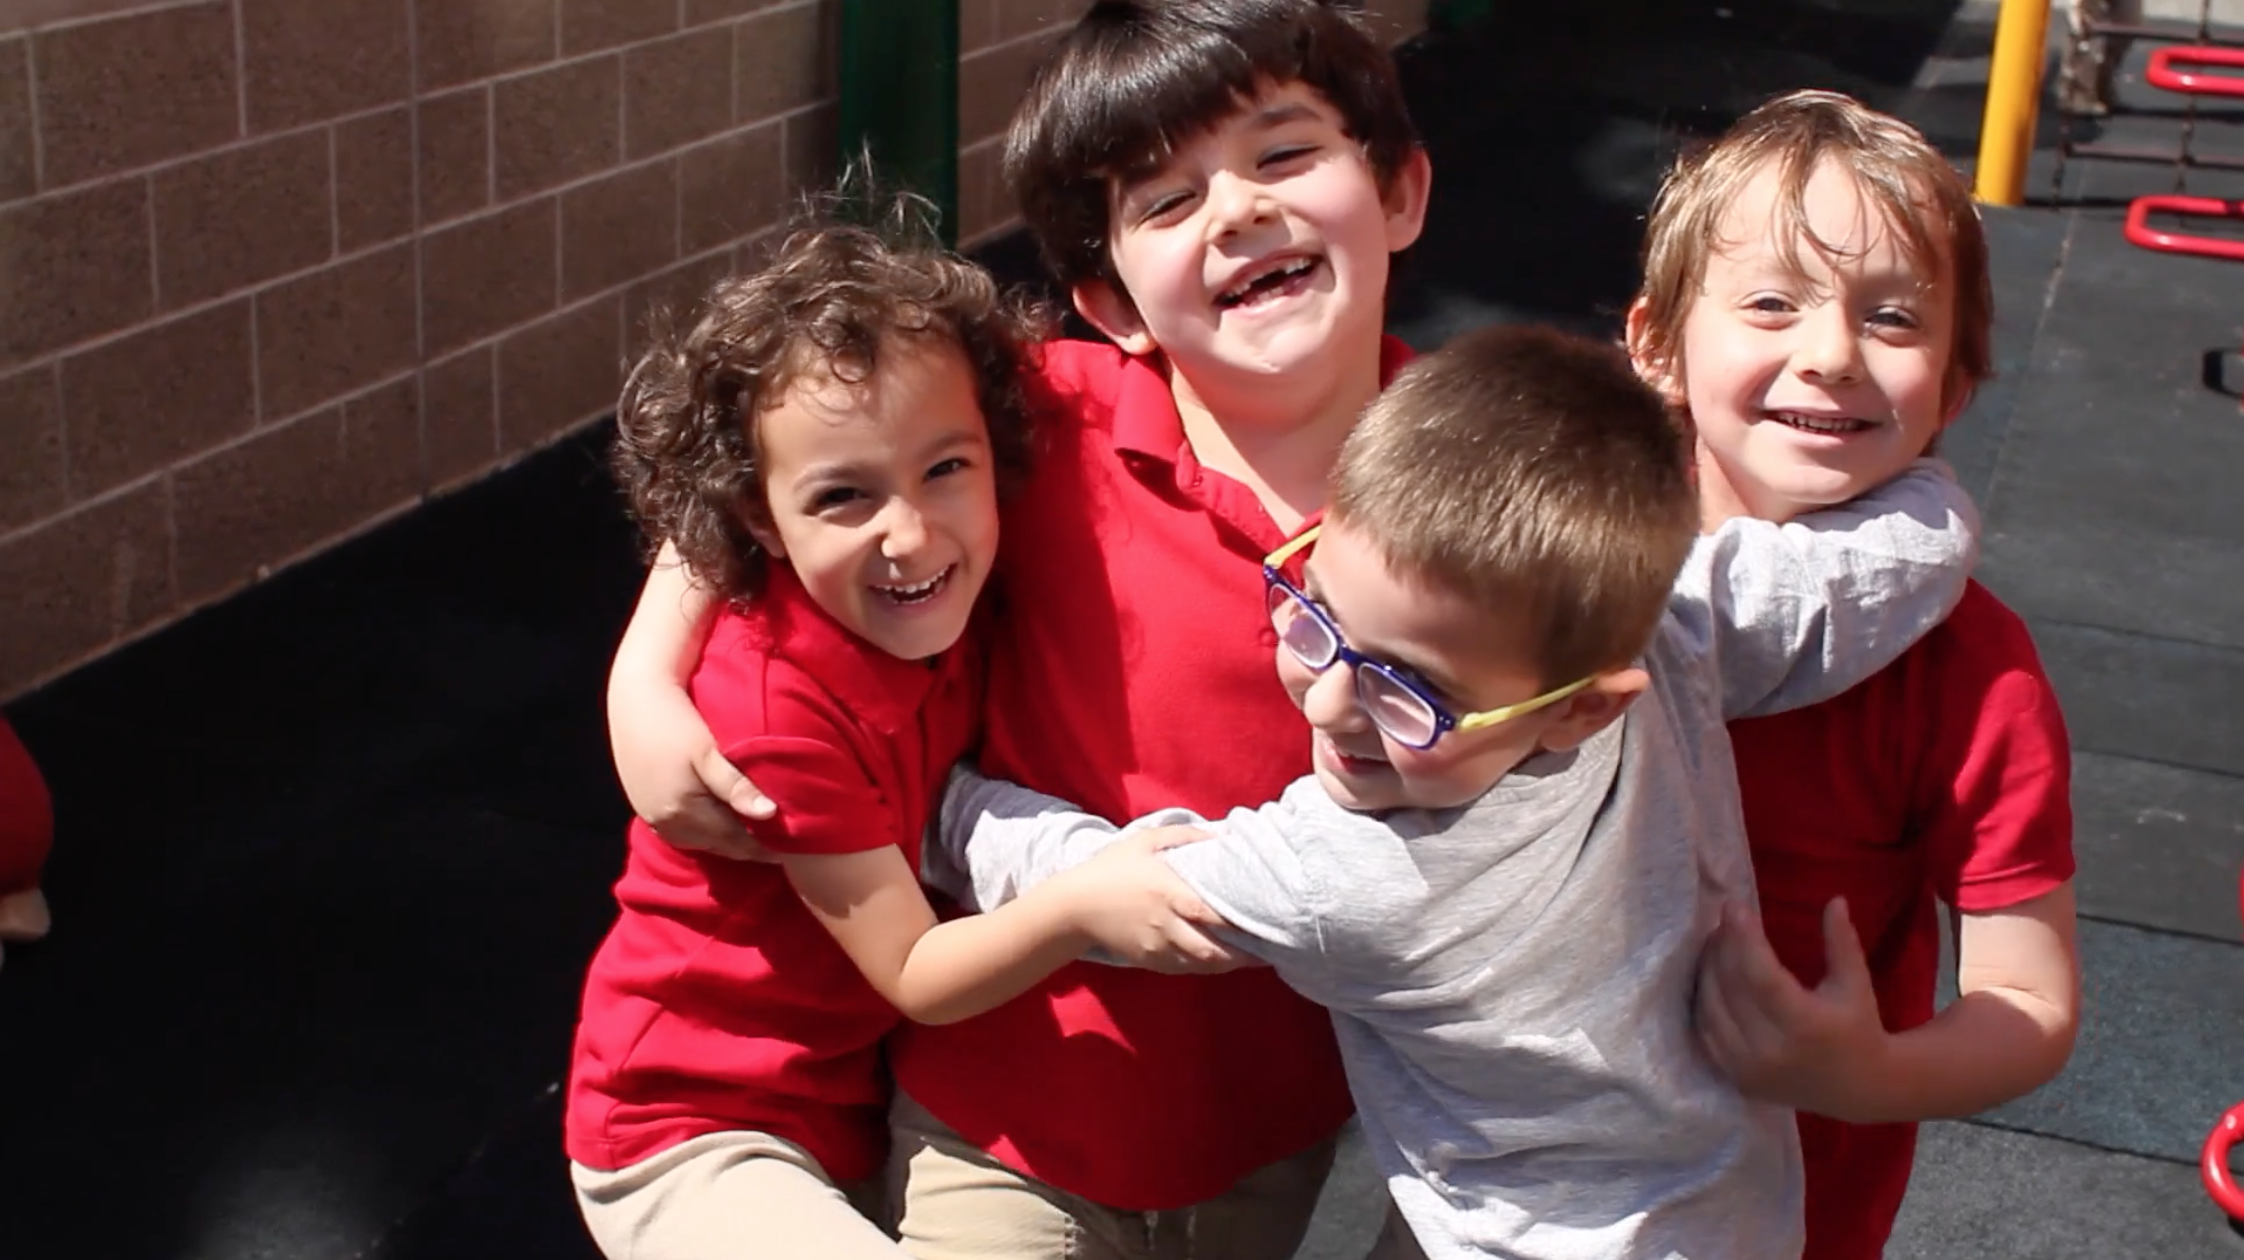 K students hugging on the playground